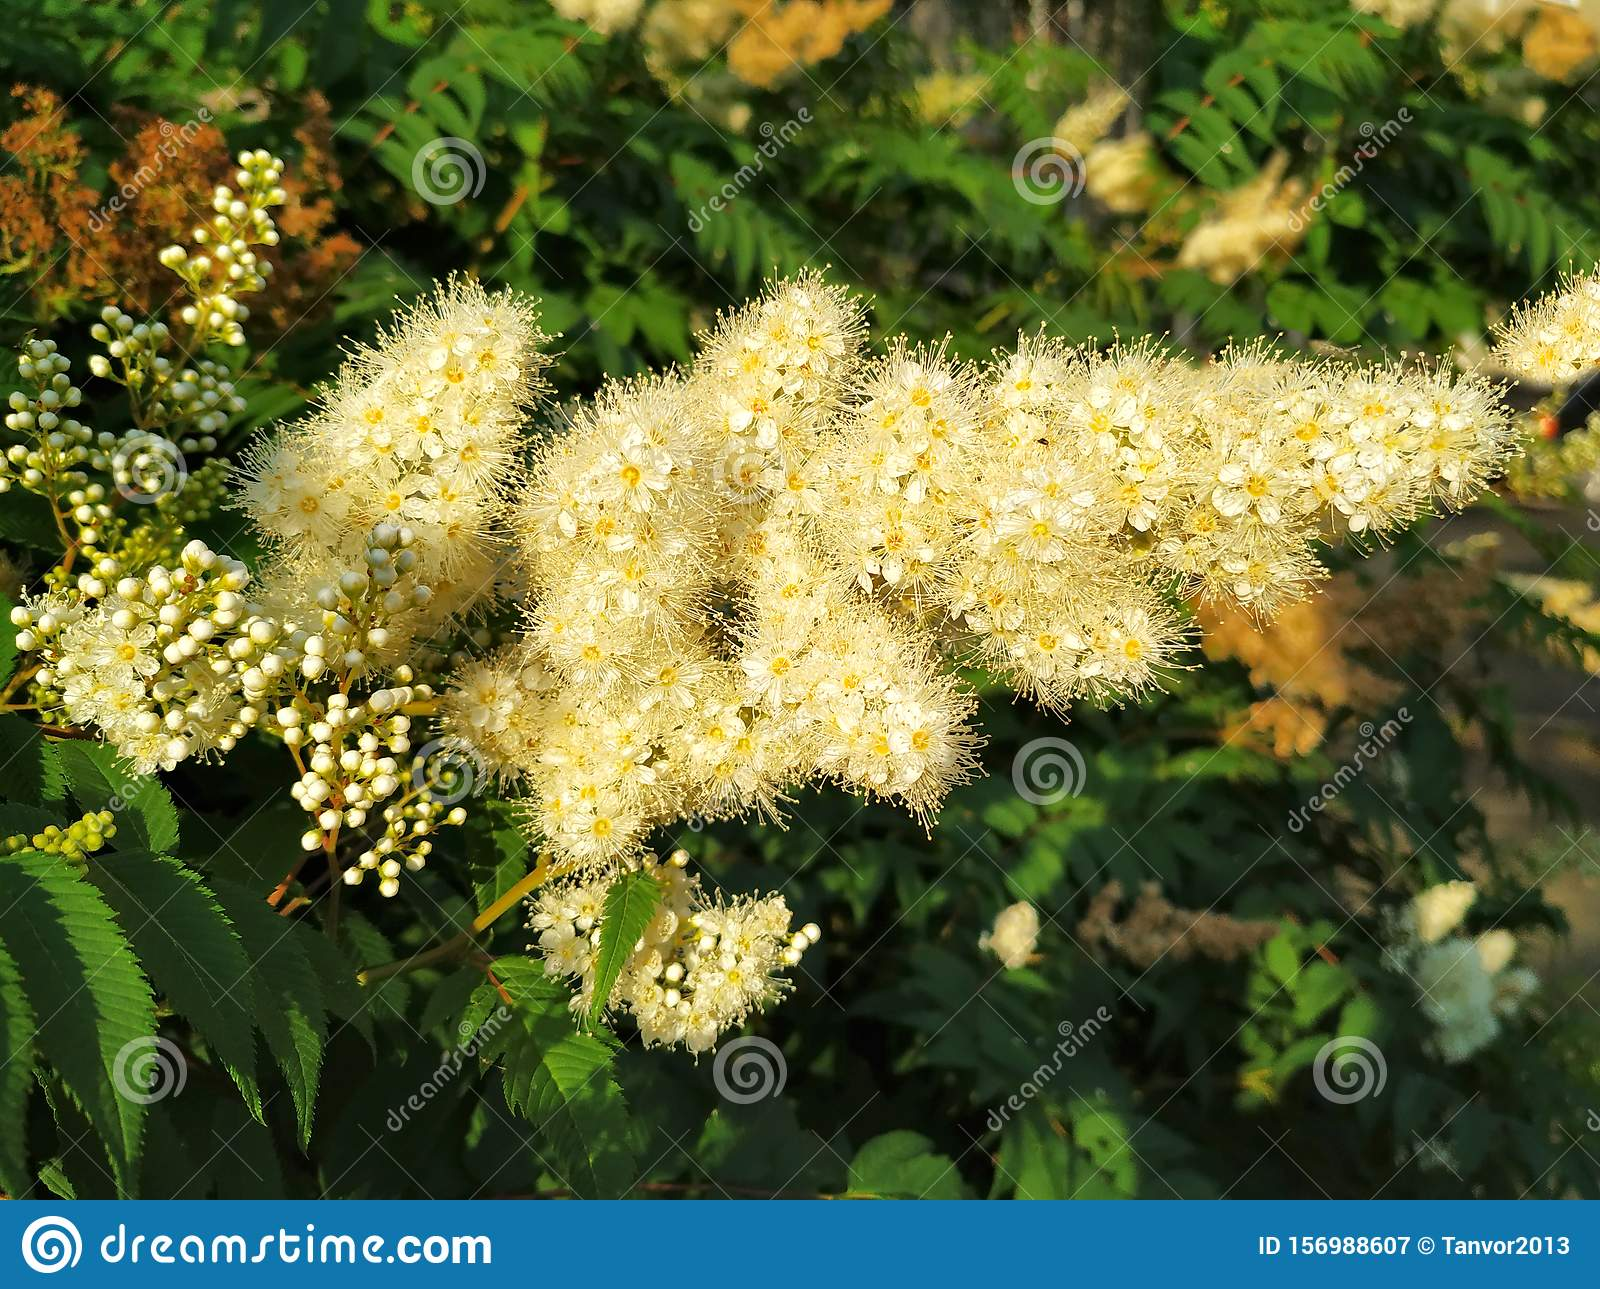 Mountain ash, tree flower. Hairy and bushy, lots of buds, a delicate cream color. On the background of green leaves.